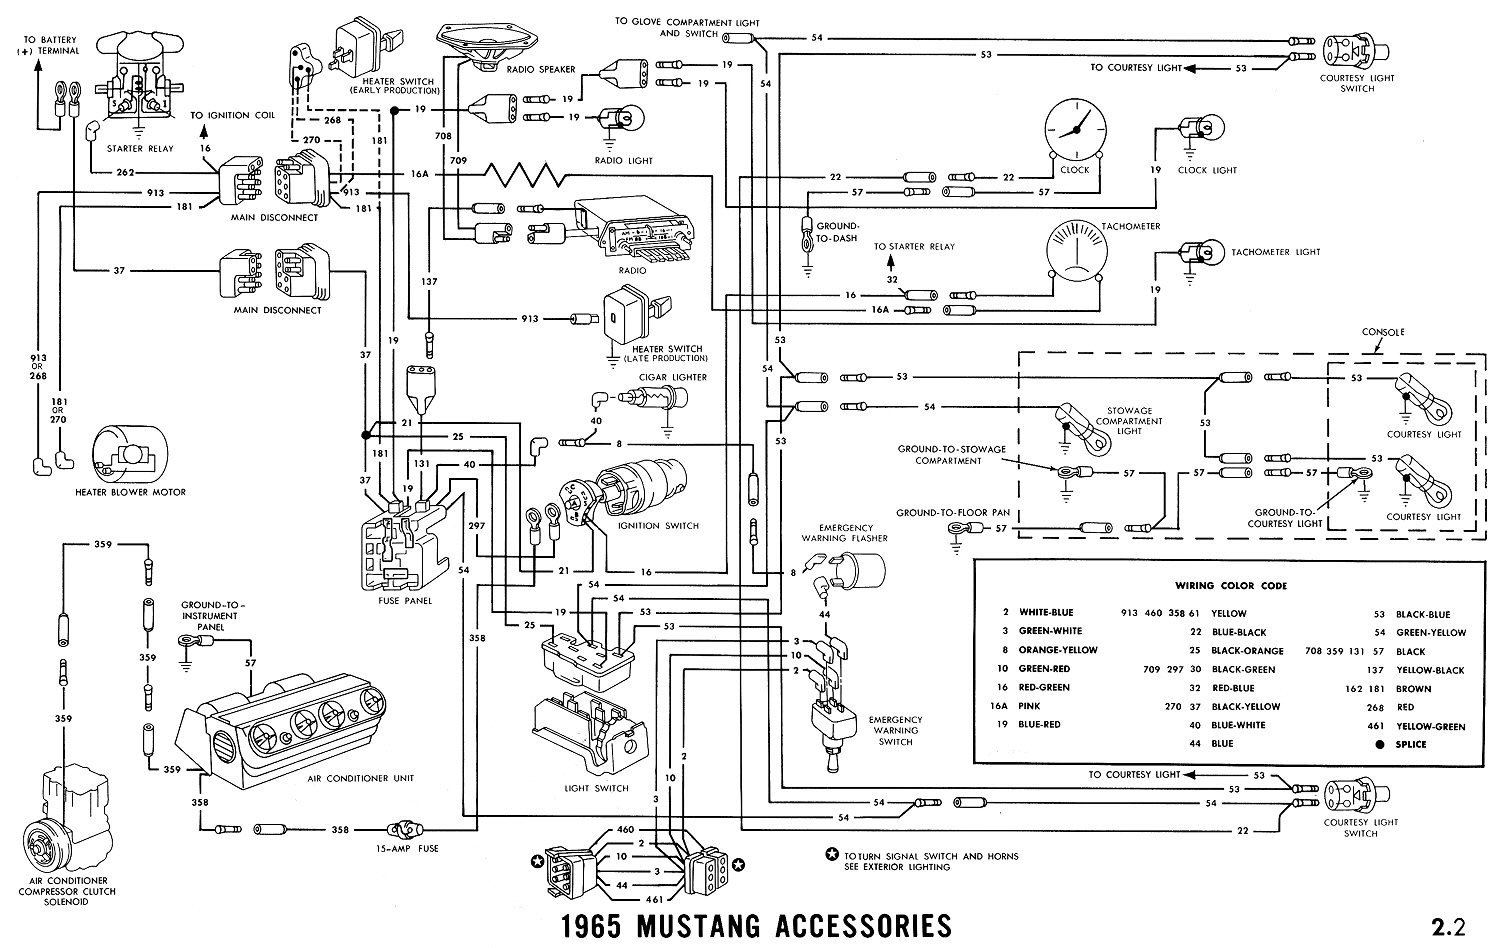 1965i 1965 mustang wiring diagrams average joe restoration 1967 mustang turn signal wiring diagram at soozxer.org